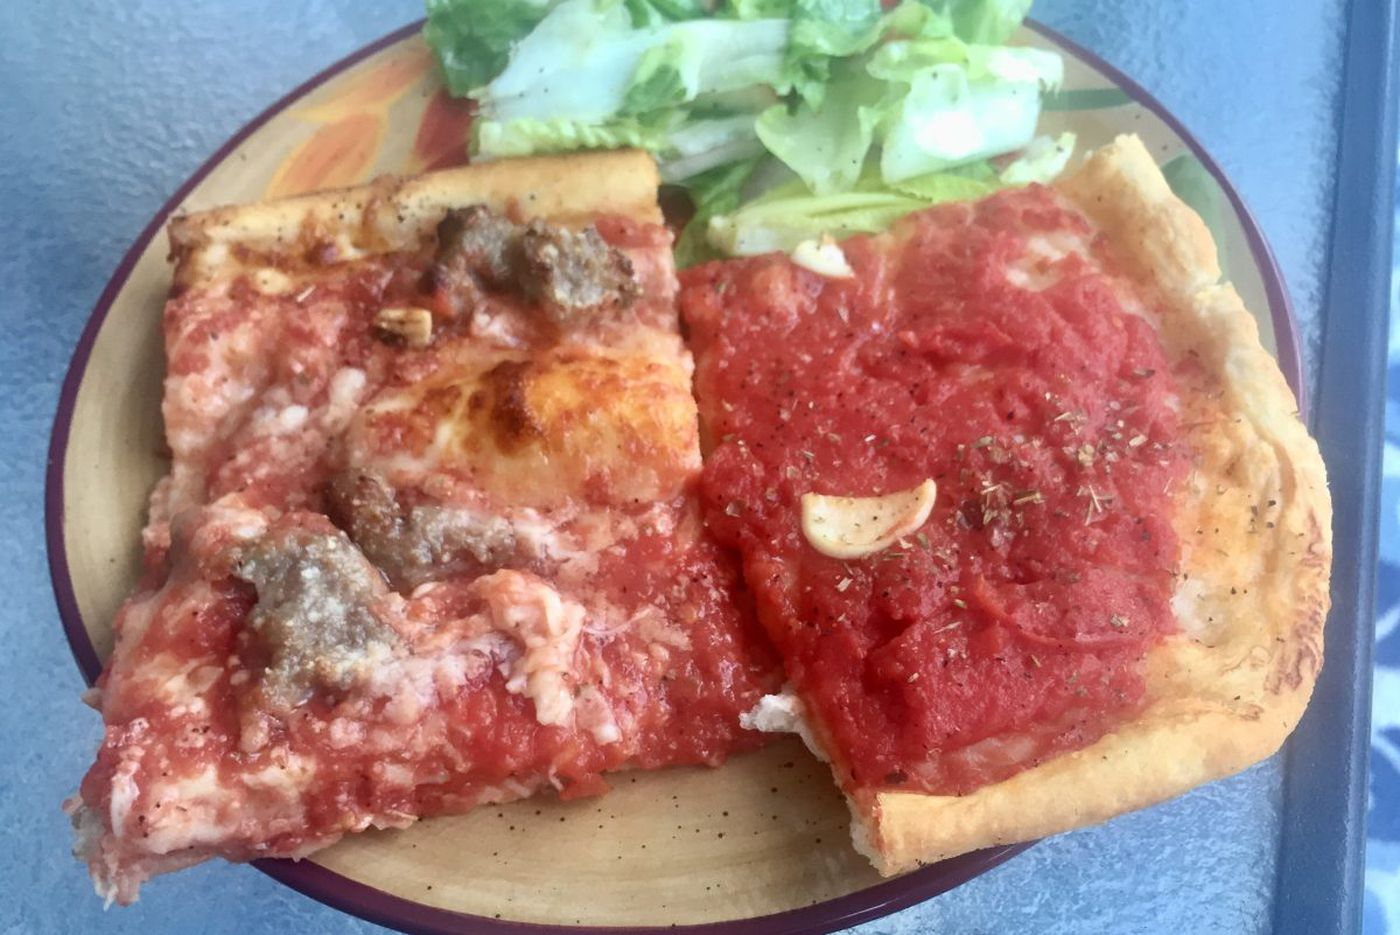 Old-school square pizza pops up at the Shore